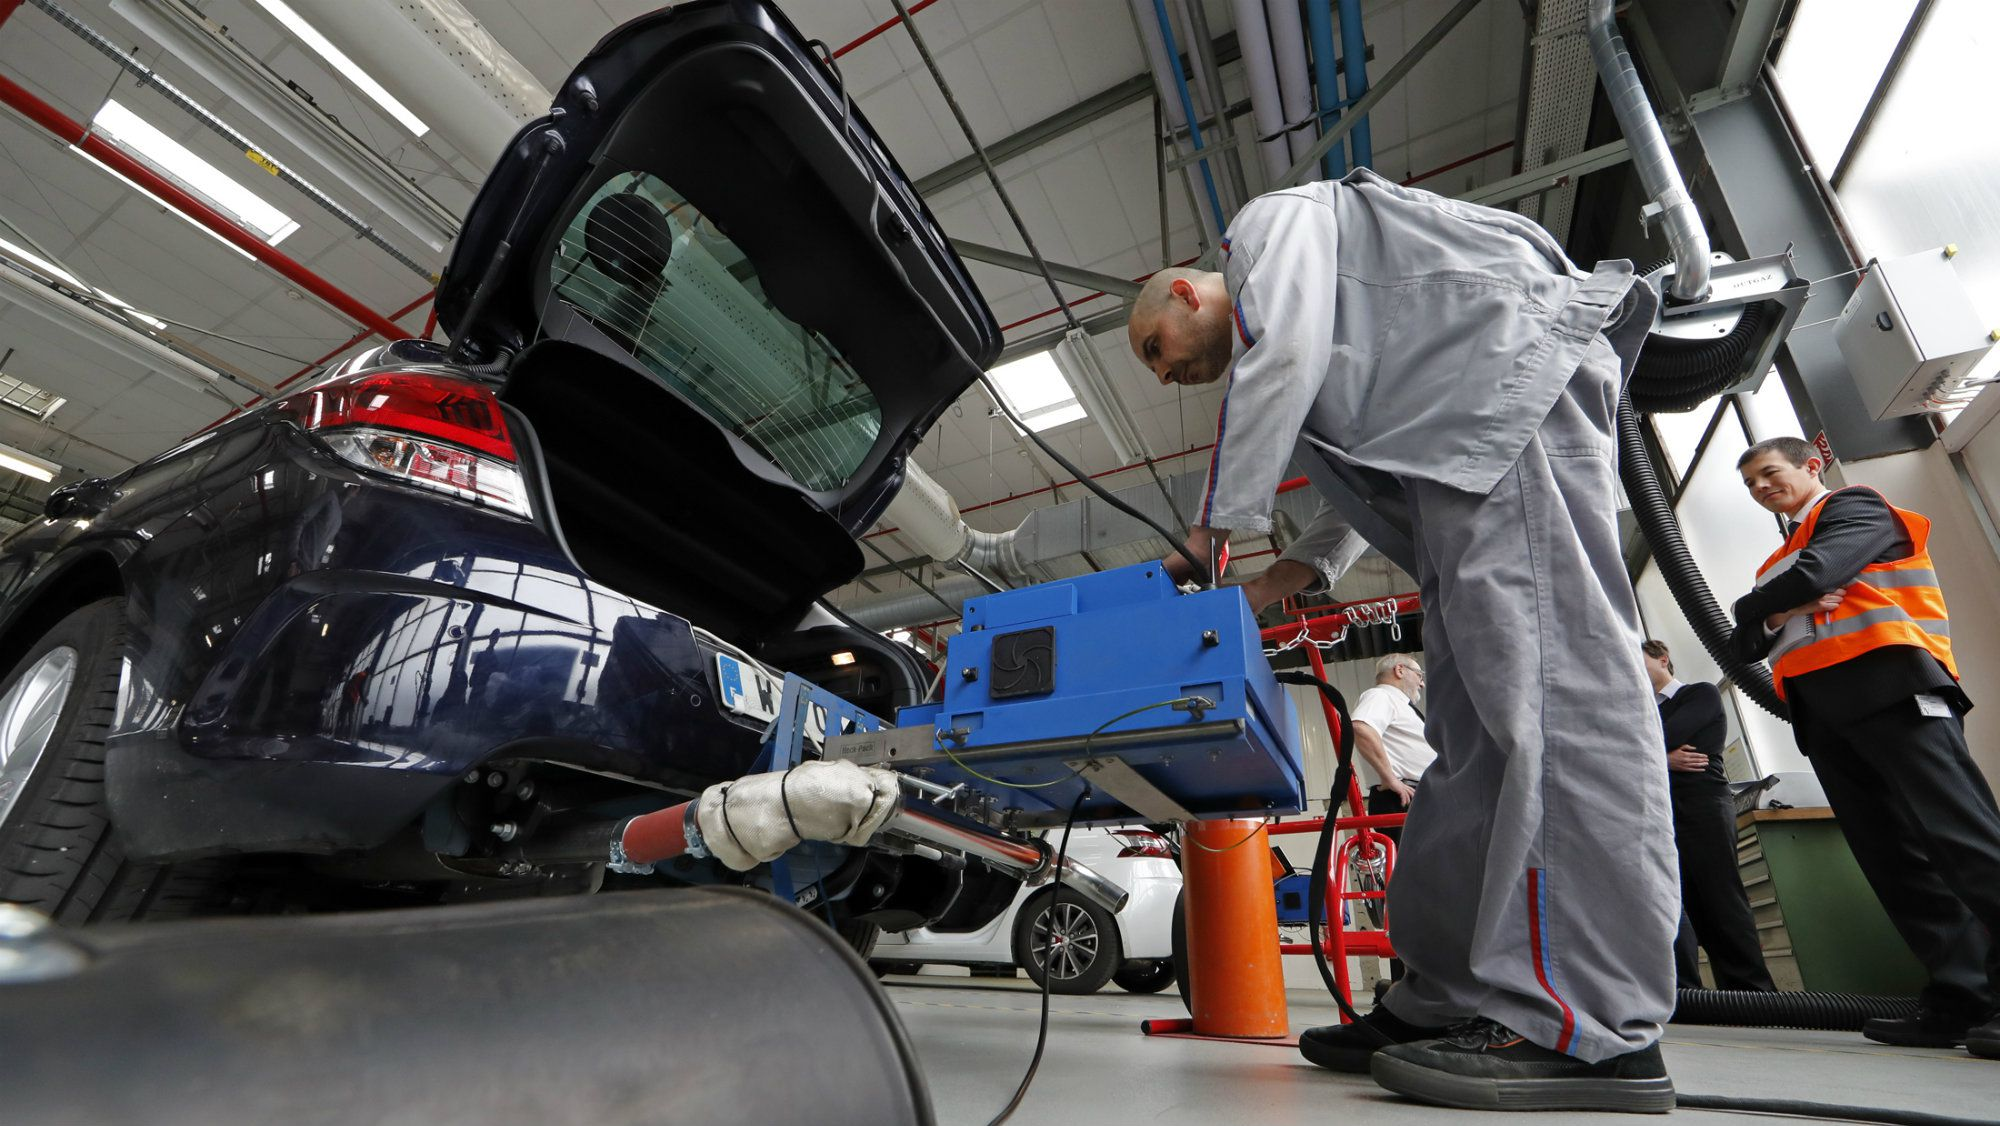 All the creative ways carmakers manipulate emissions tests—that we know about — Quartz